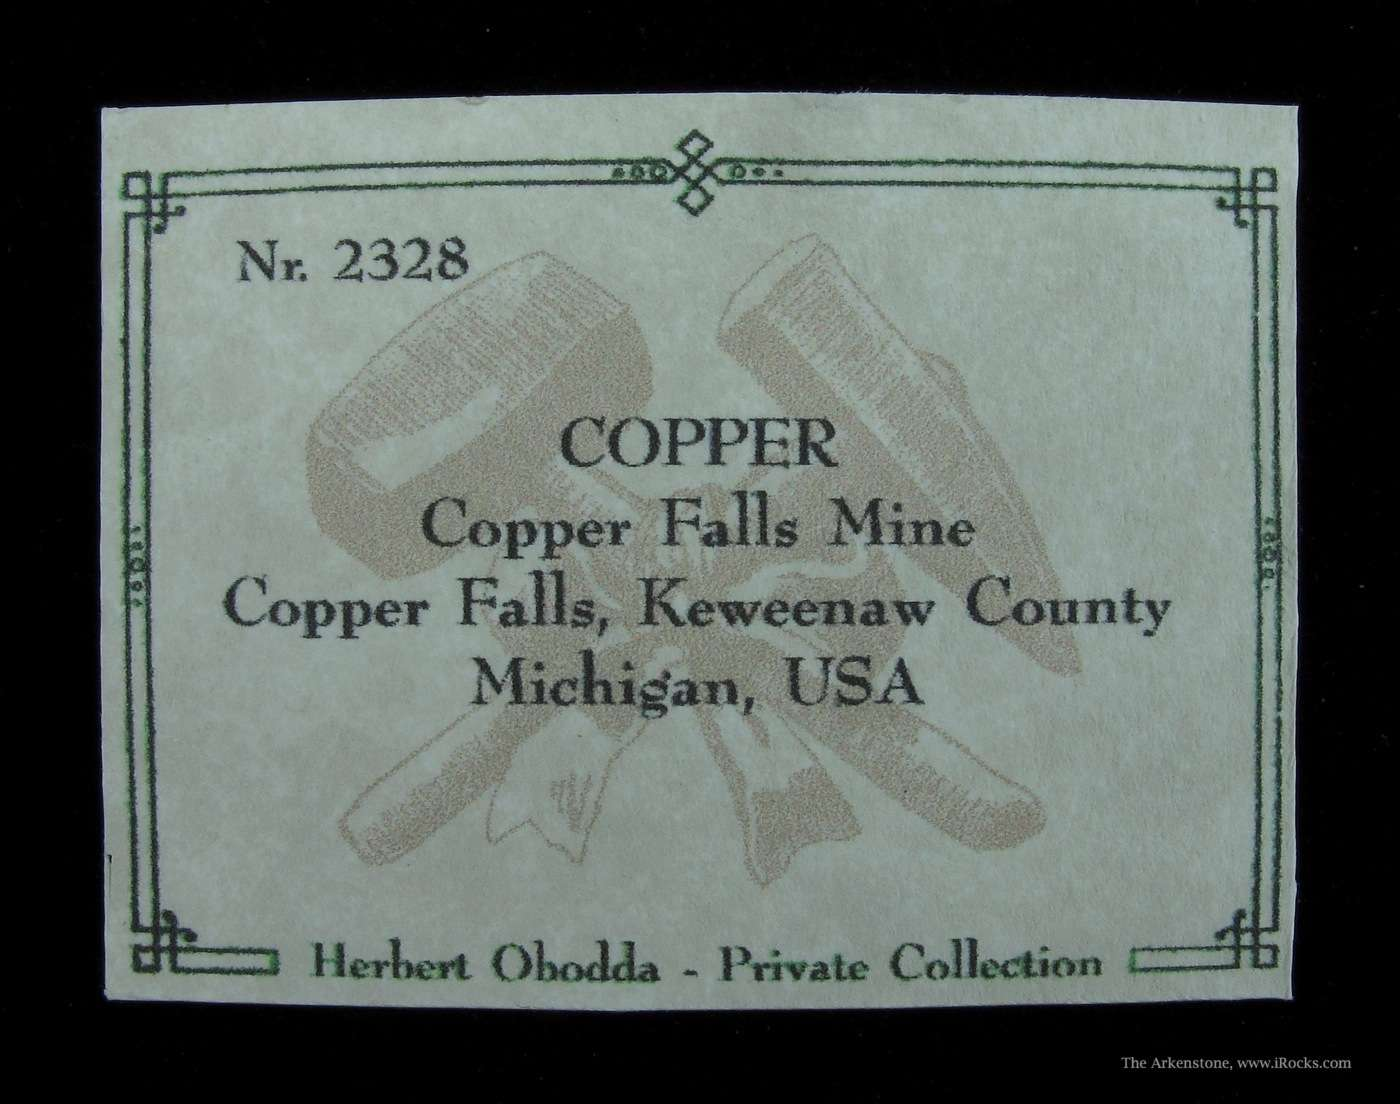 A wildly crystallized anthropomorphic Copper specimen Copper Falls